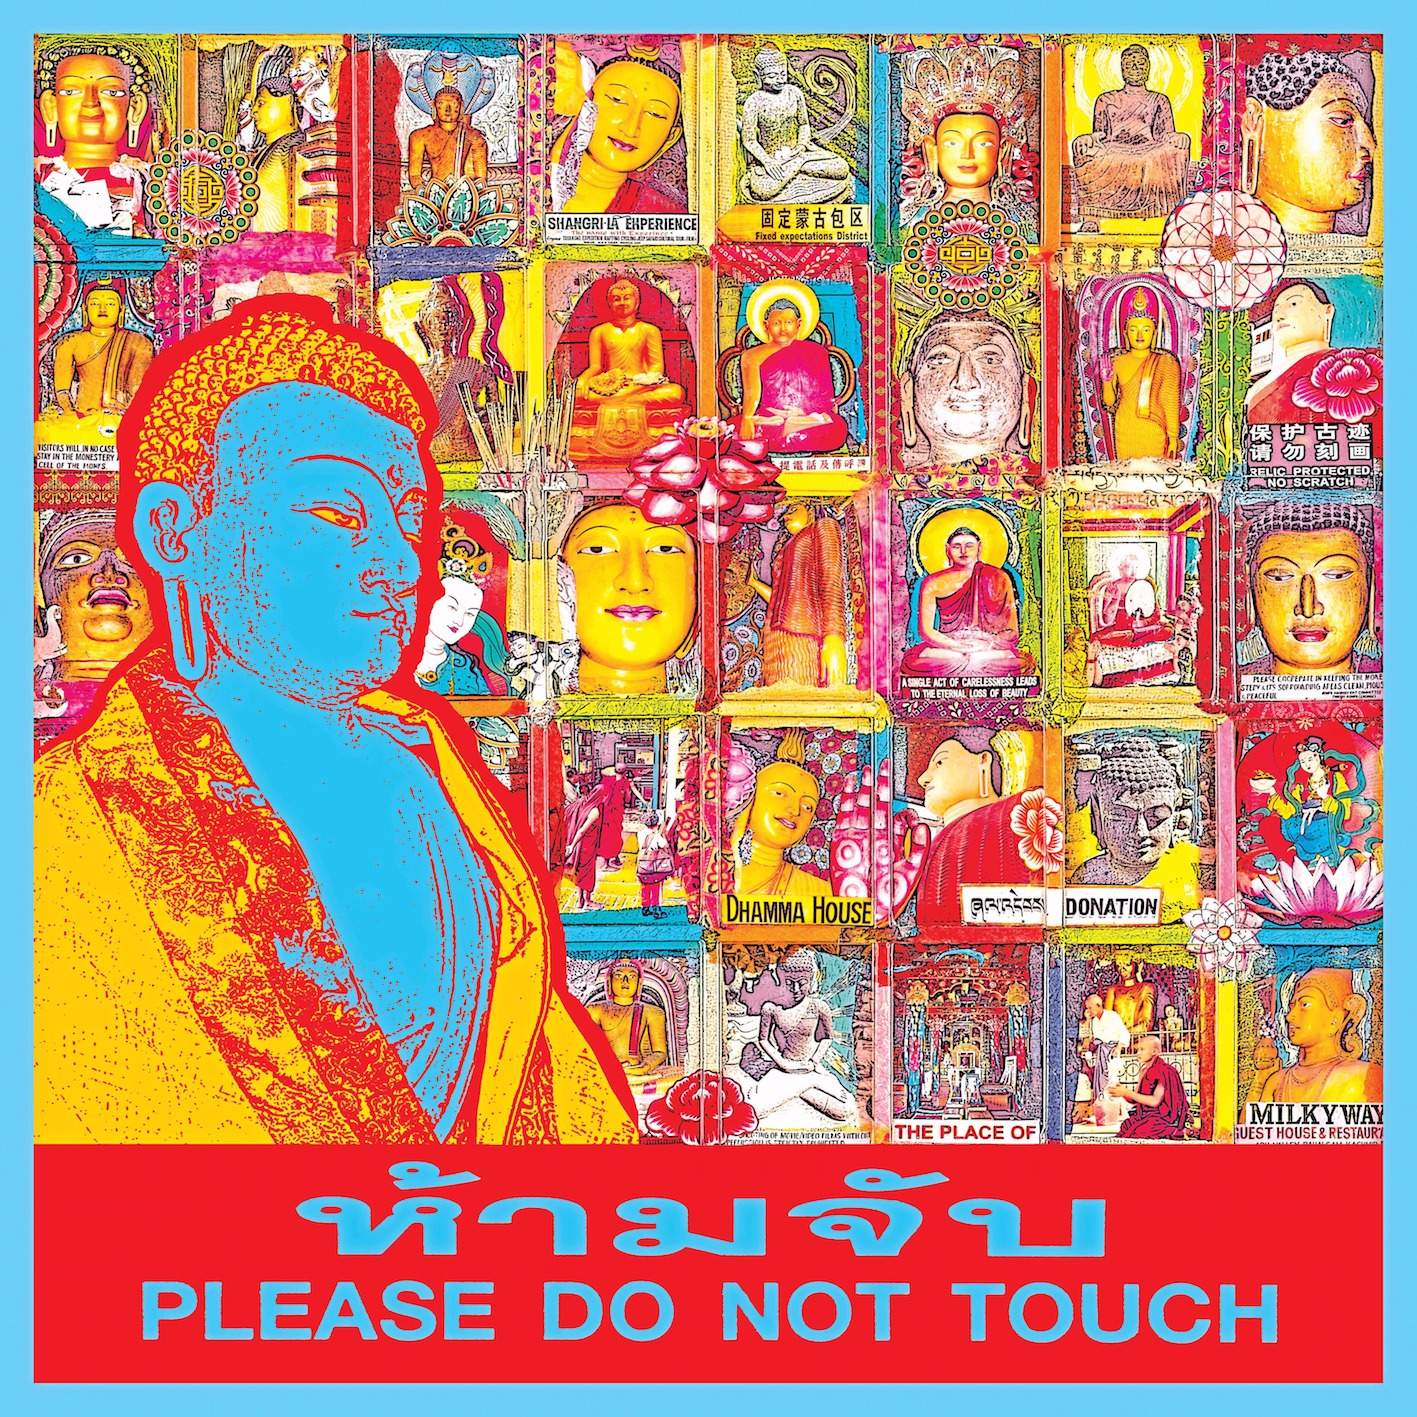 'PLEASE DO NOT TOUCH THE BUDDHA'